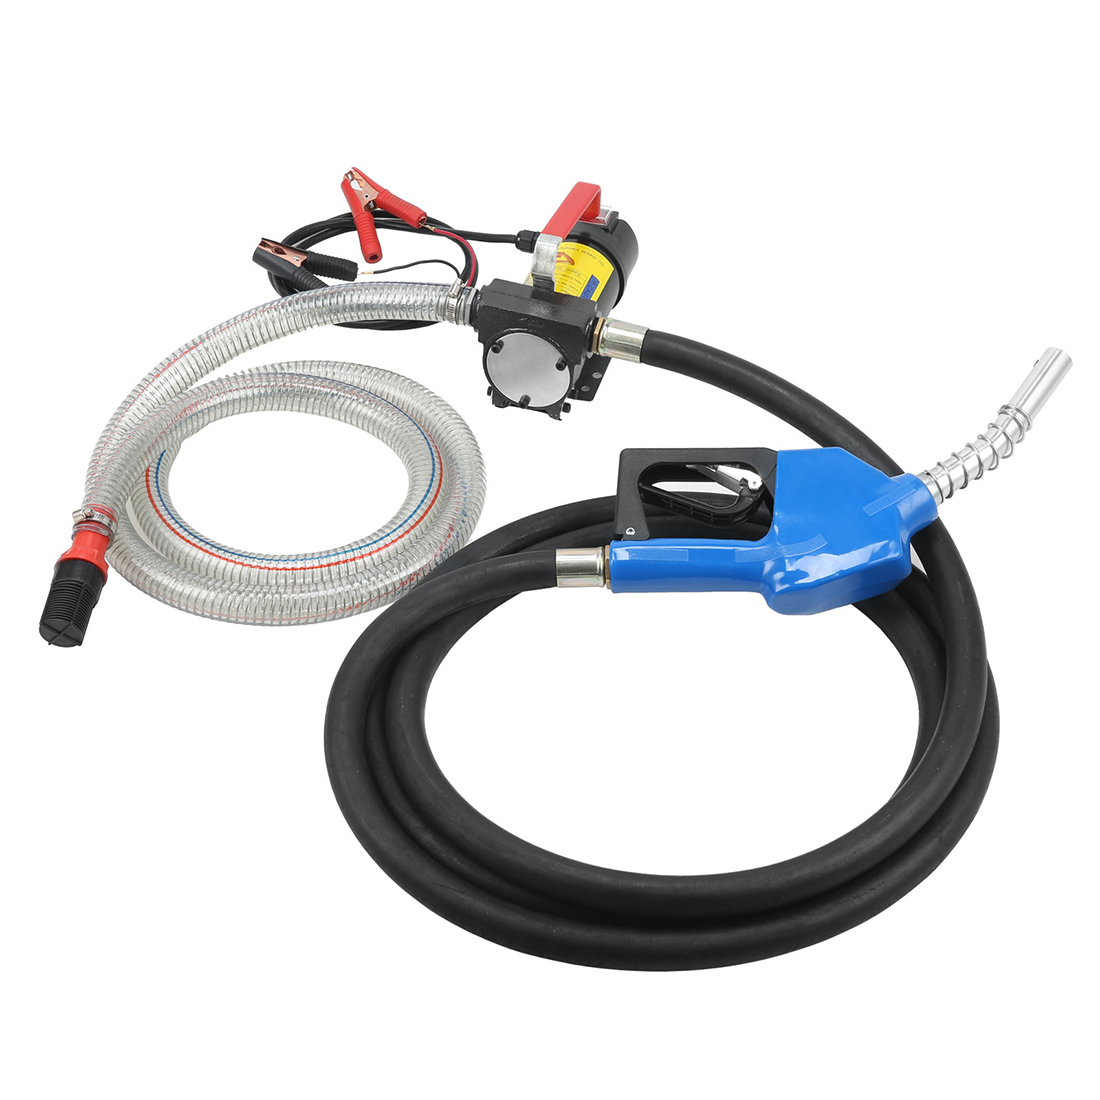 AUTO -Portable 12V crude oil engine Fluid Extractor Electric Transfer Pump Car Fuel Auto Speed